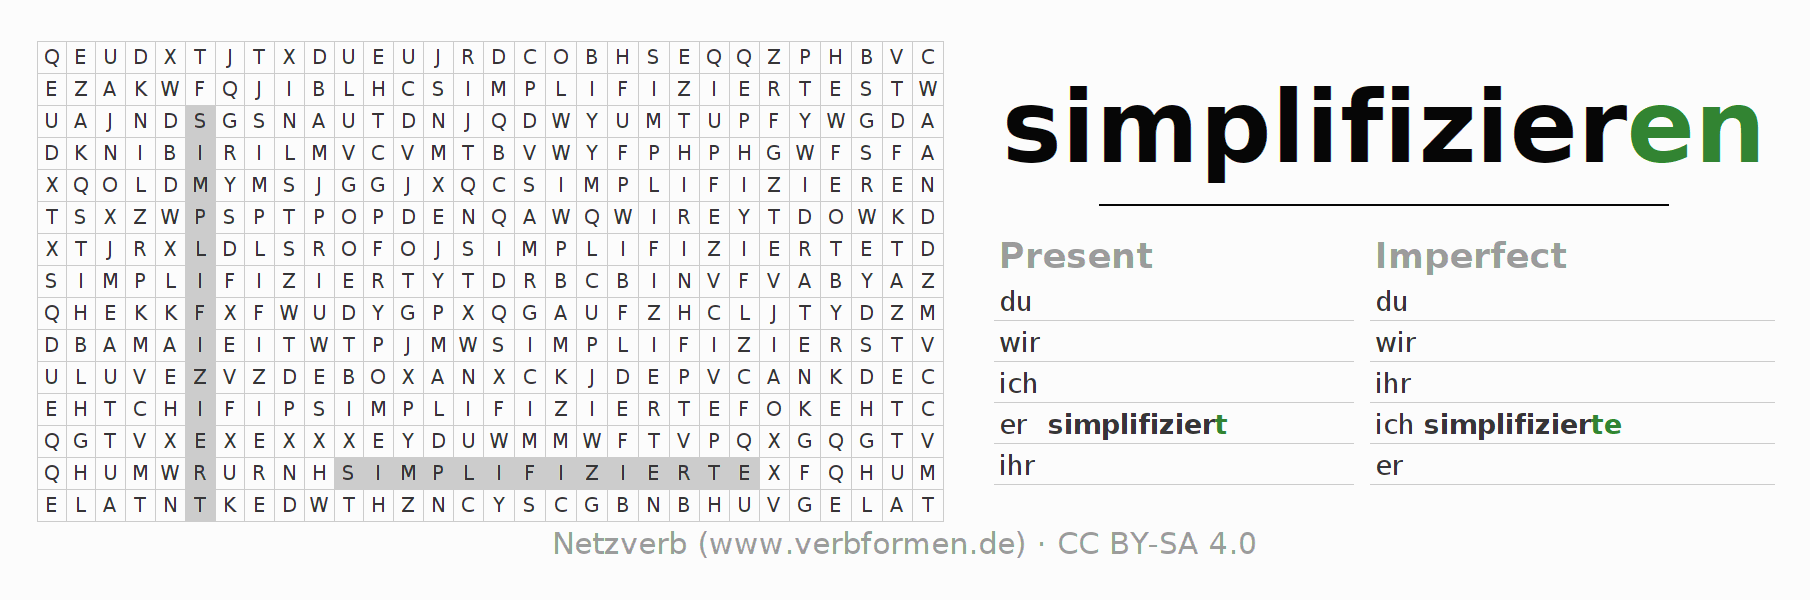 Word search puzzle for the conjugation of the verb simplifizieren